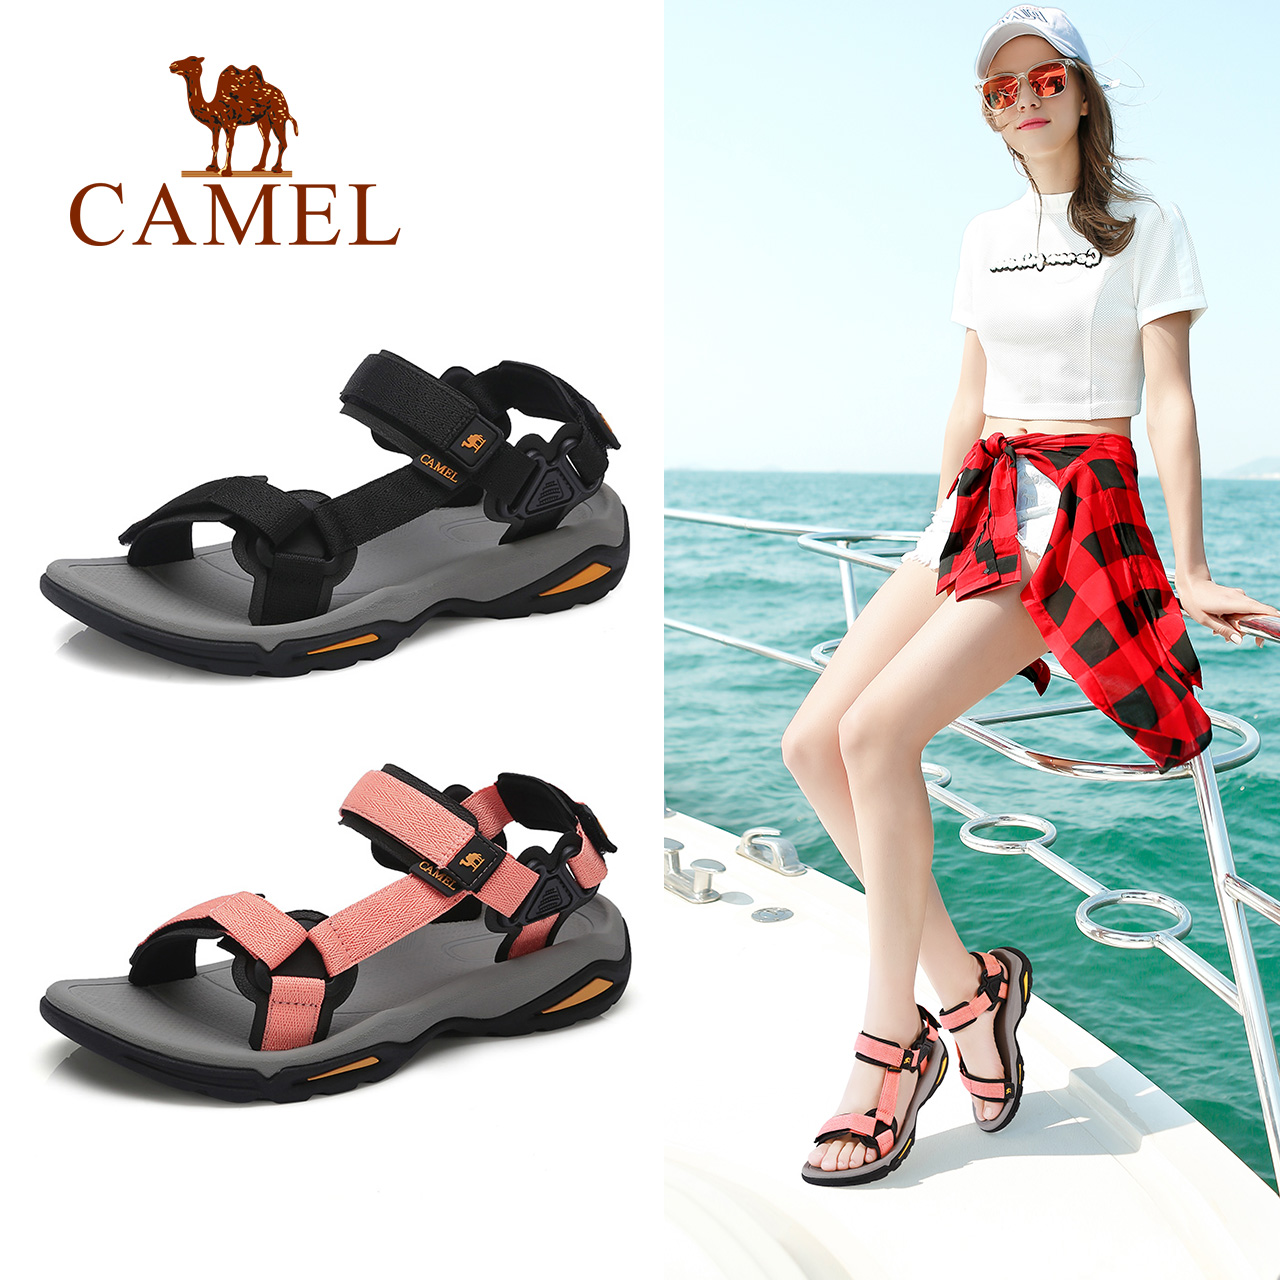 Camel Shoes Summer 2019 Simple Ribbon Fashion Beach Shoes Flat-soled Sandals Leisure Sports Sandals